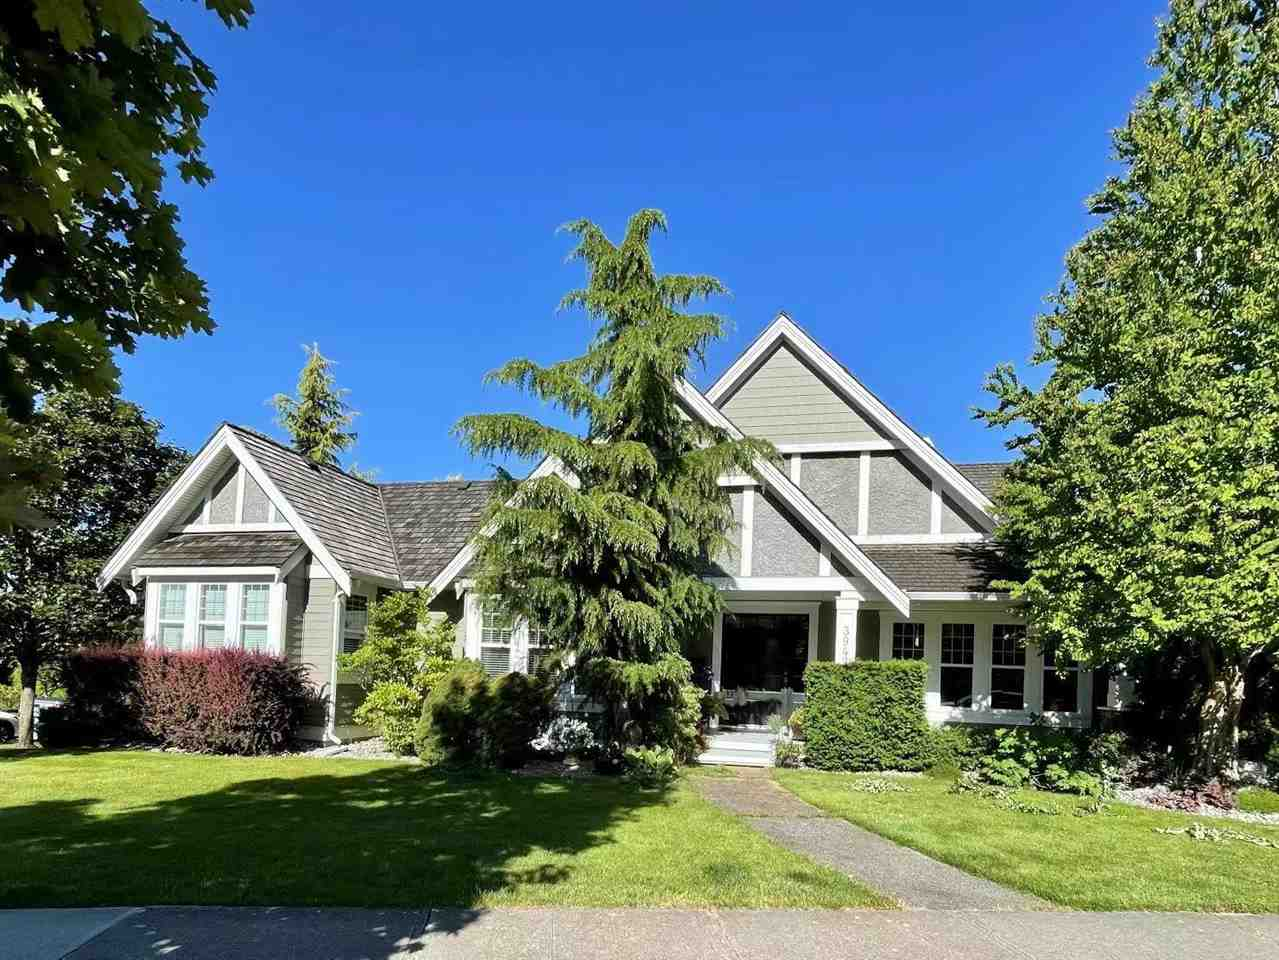 3942 156B STREET - Morgan Creek - Surrey